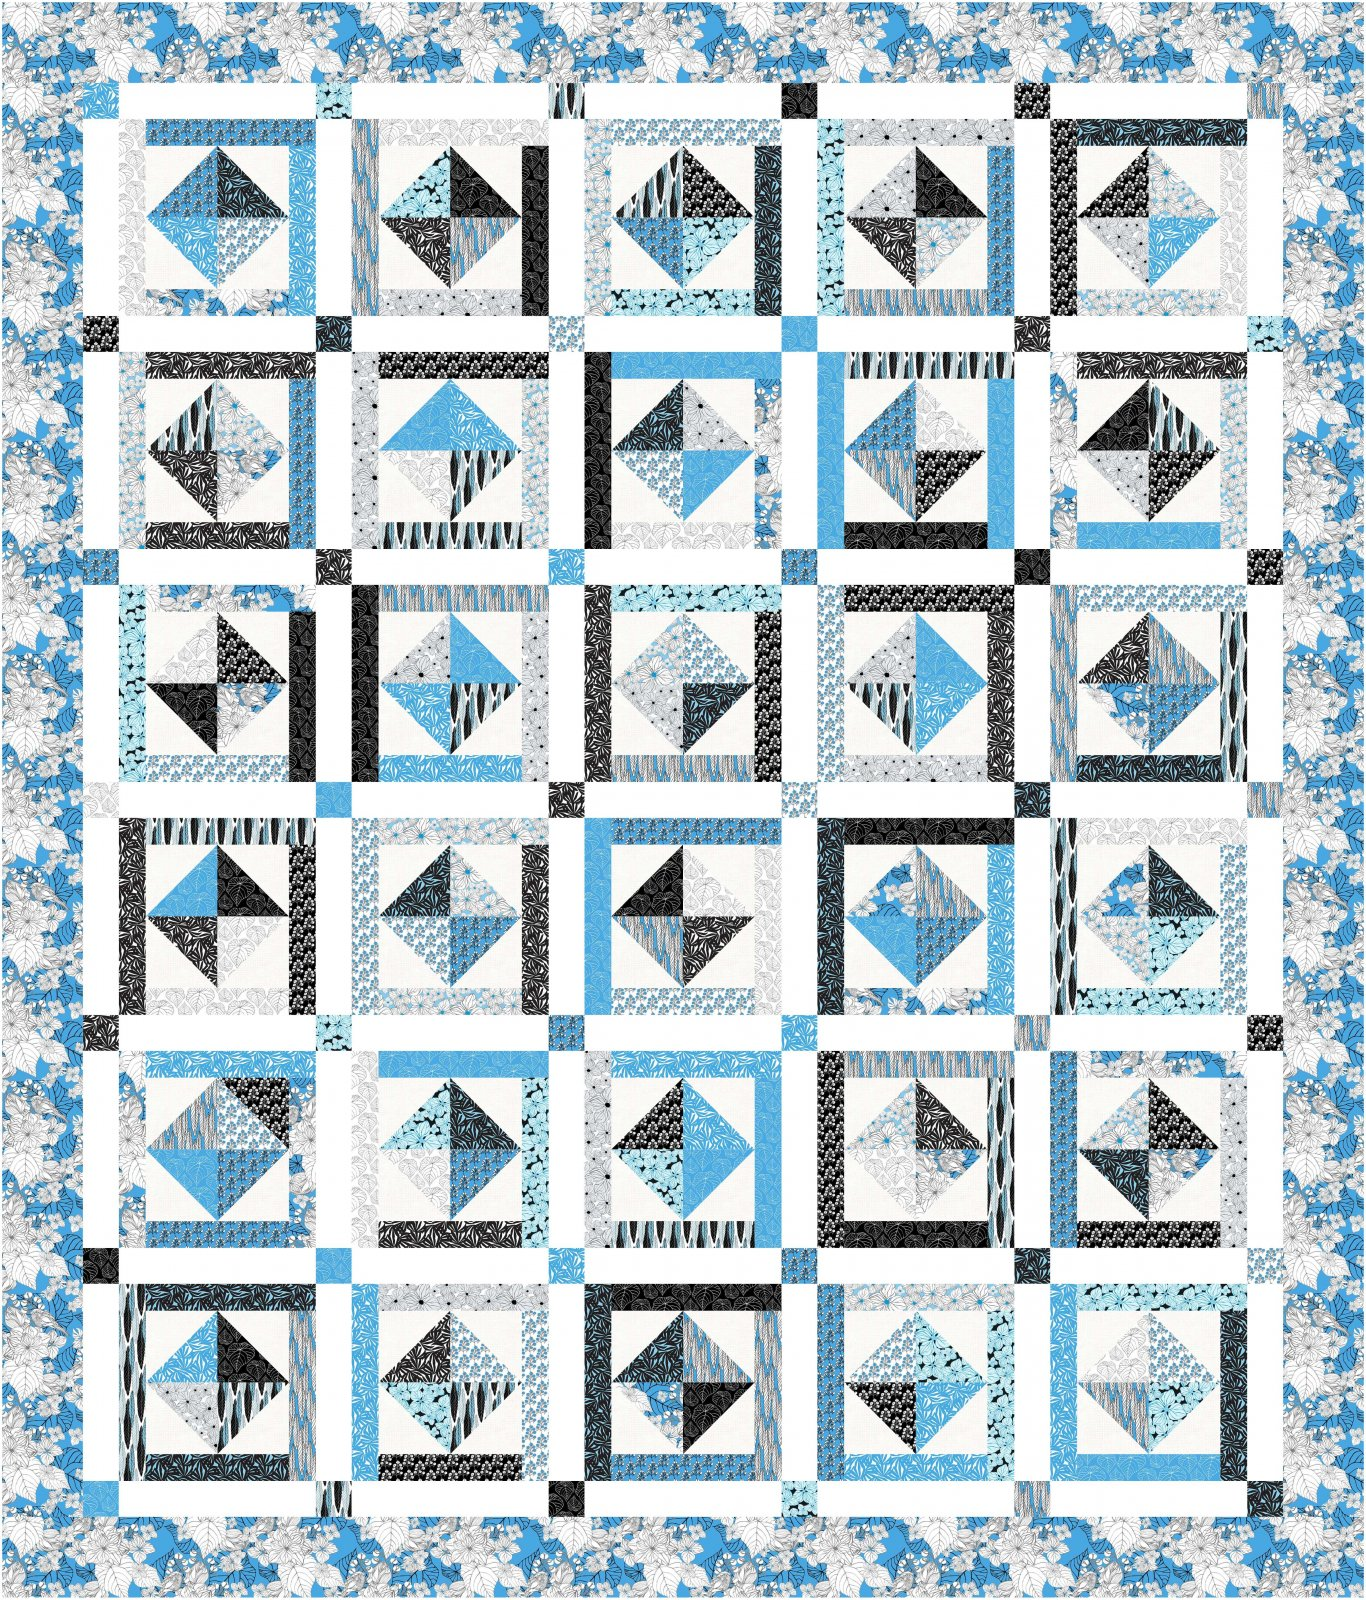 Ivory Woods -  Mother's Mistake Quilt Kit  - Blue - 76 x 89